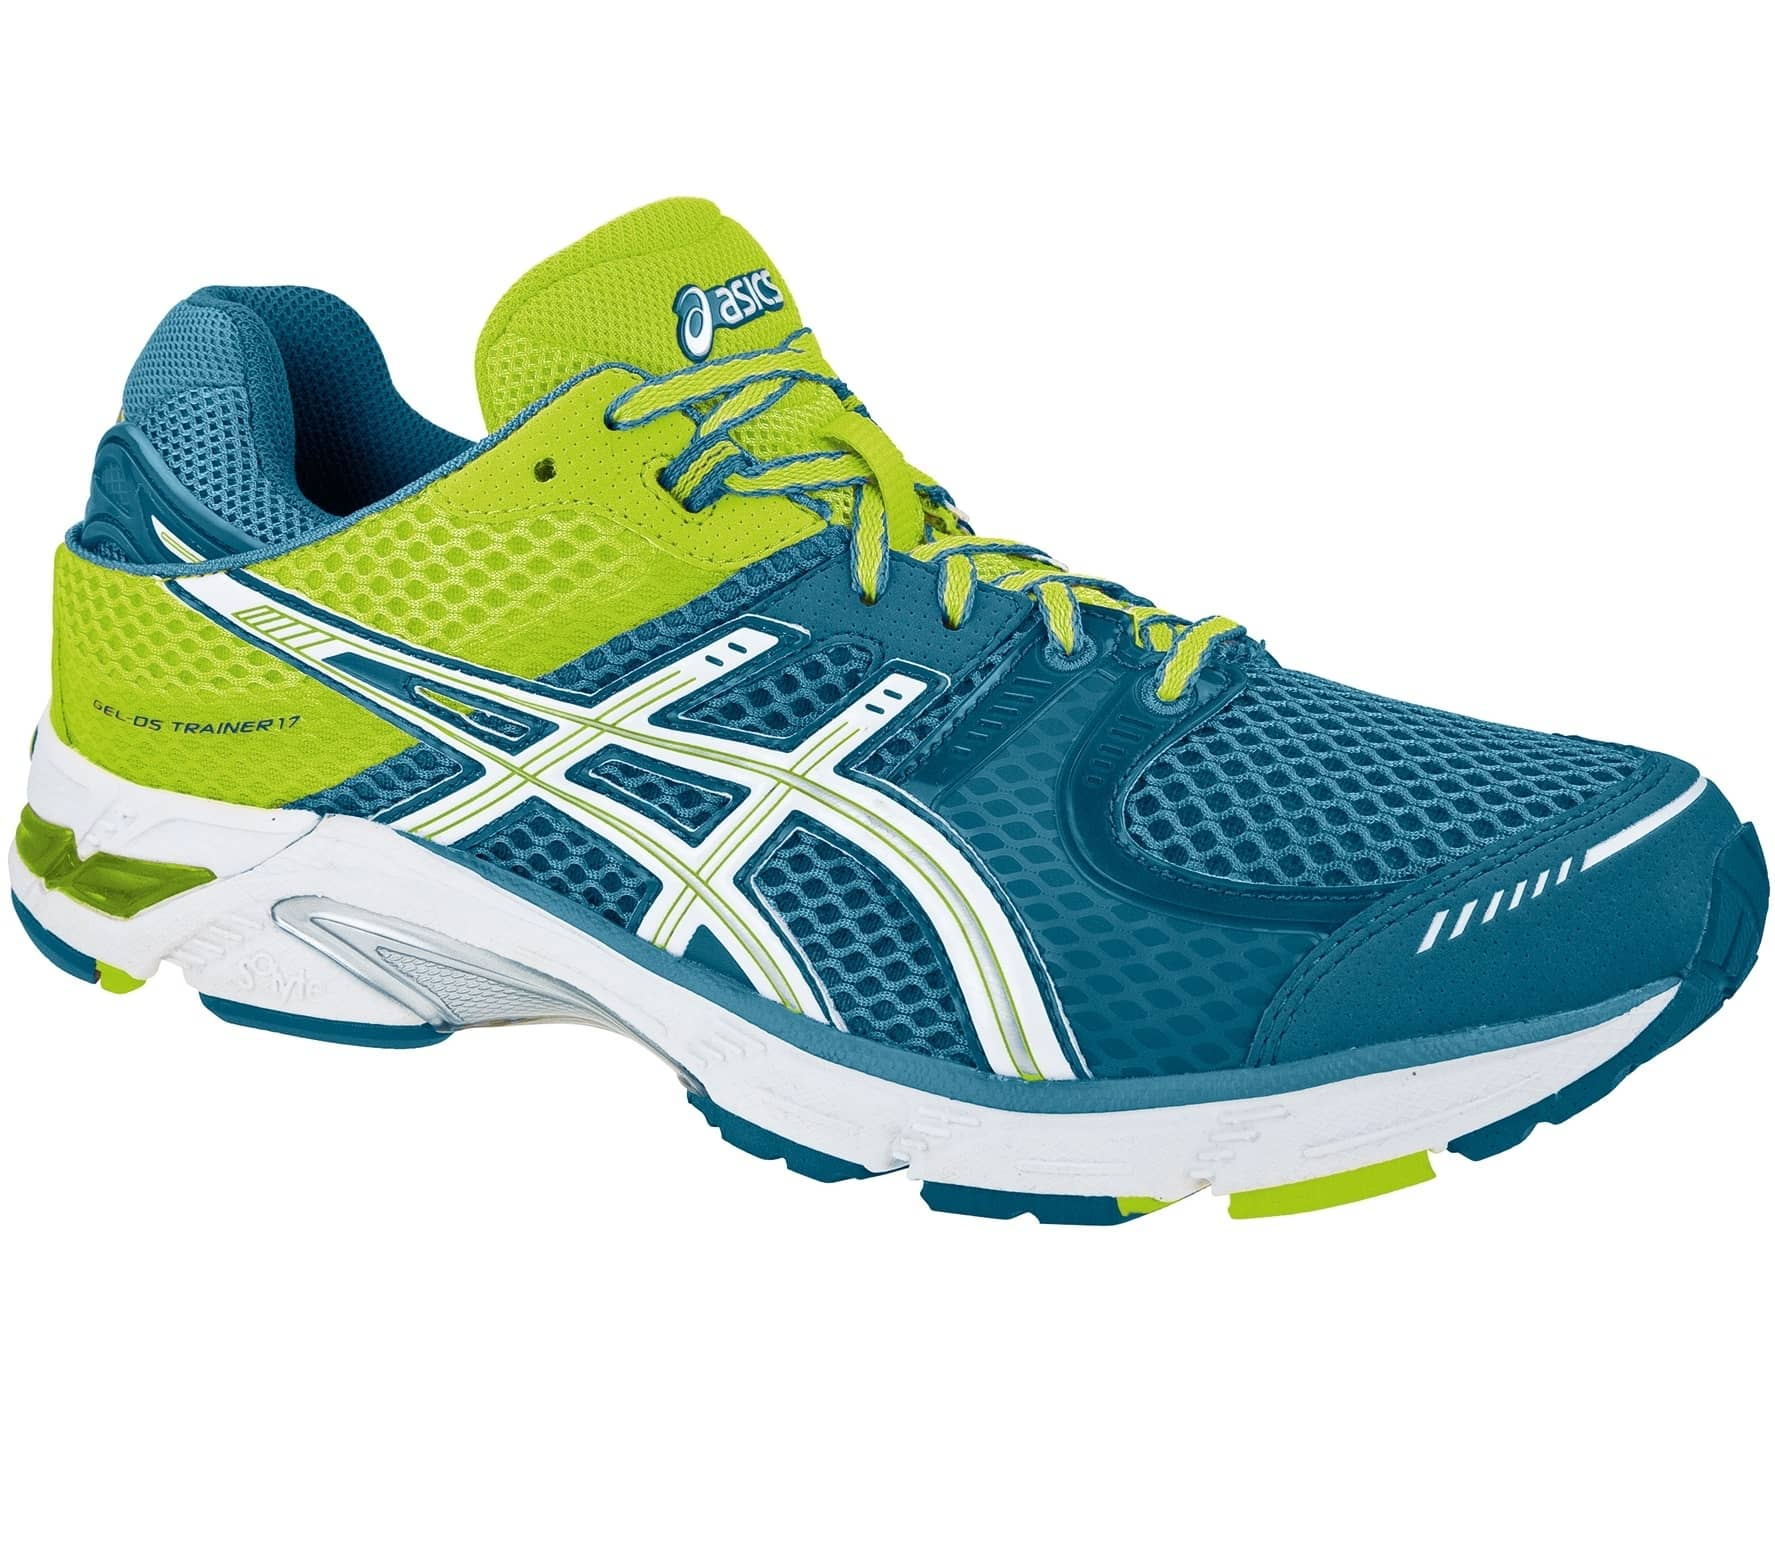 super popular d91cd 869d0 Asics - running shoes Gel DS Trainer 17 - HW12